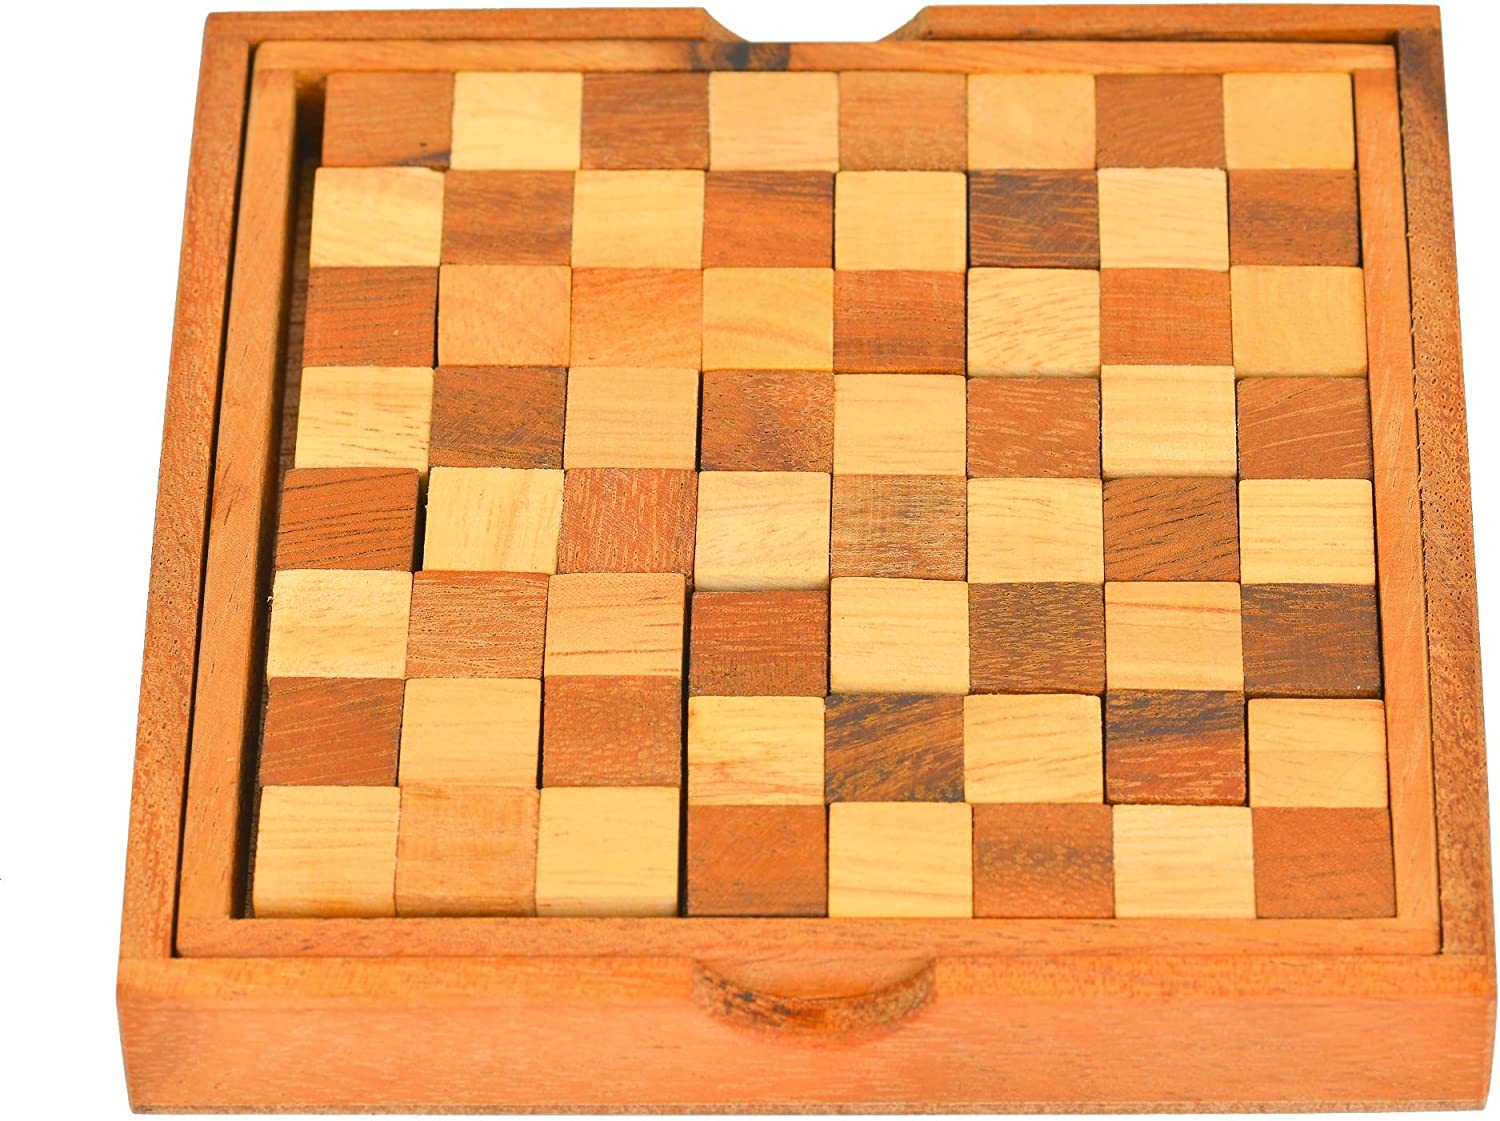 Brain Games Pento Chess Puzzle 9 Inch Wood Amazon Canada